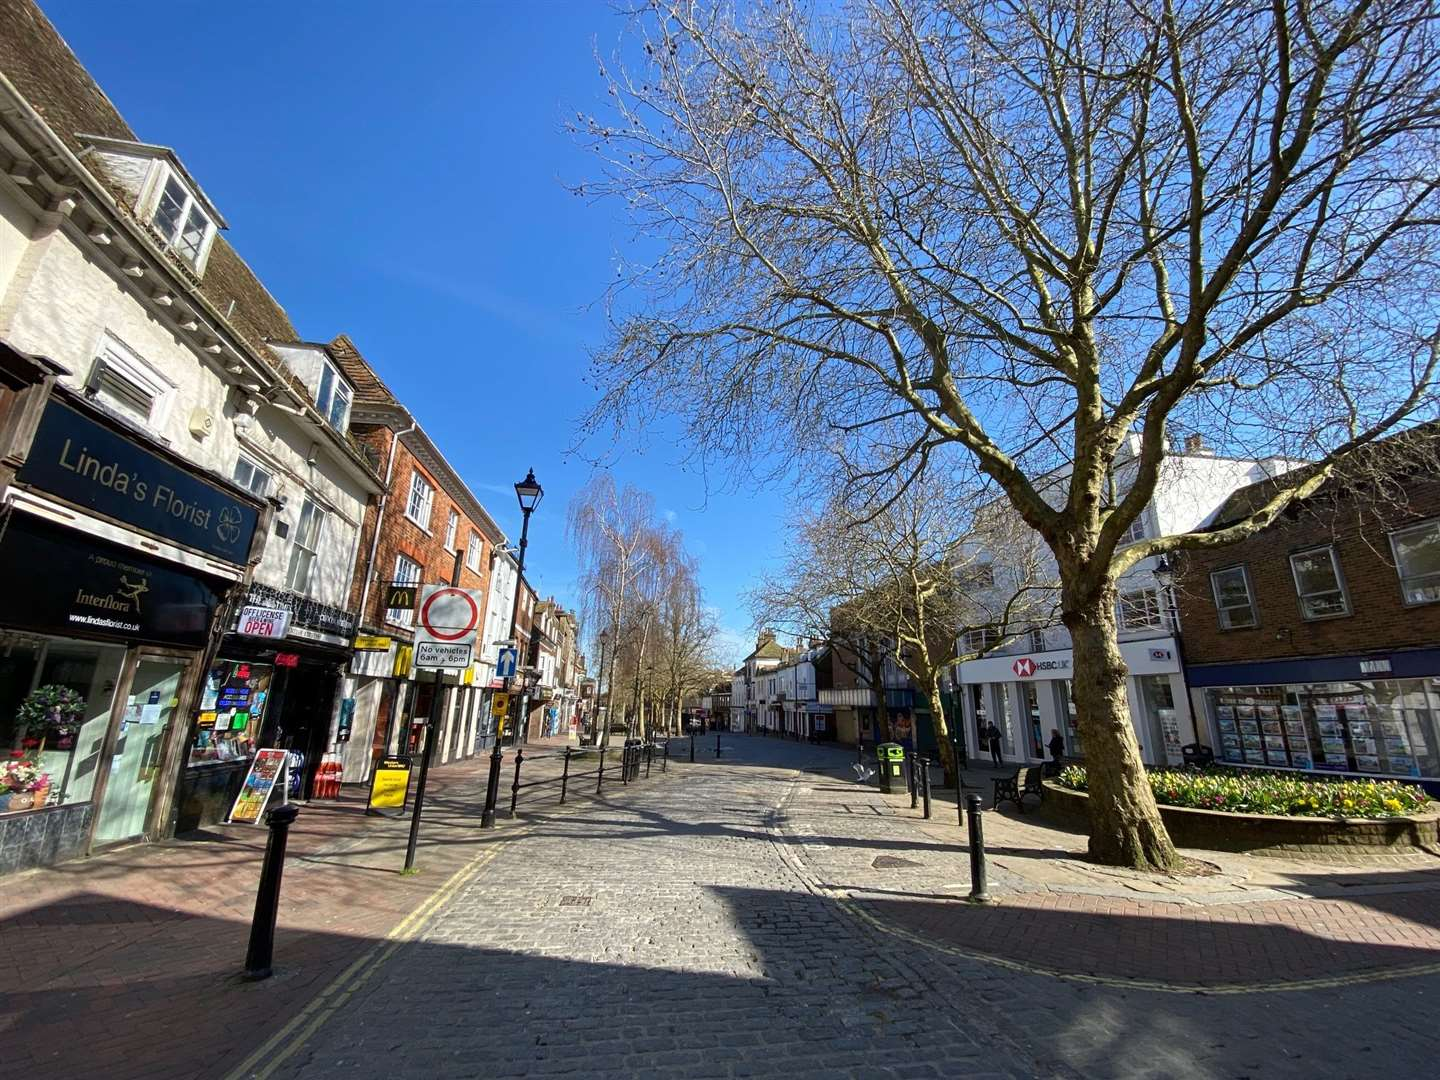 Town centres have been left deserted during the lockdown - and SMEs are struggling to survive as a consequence